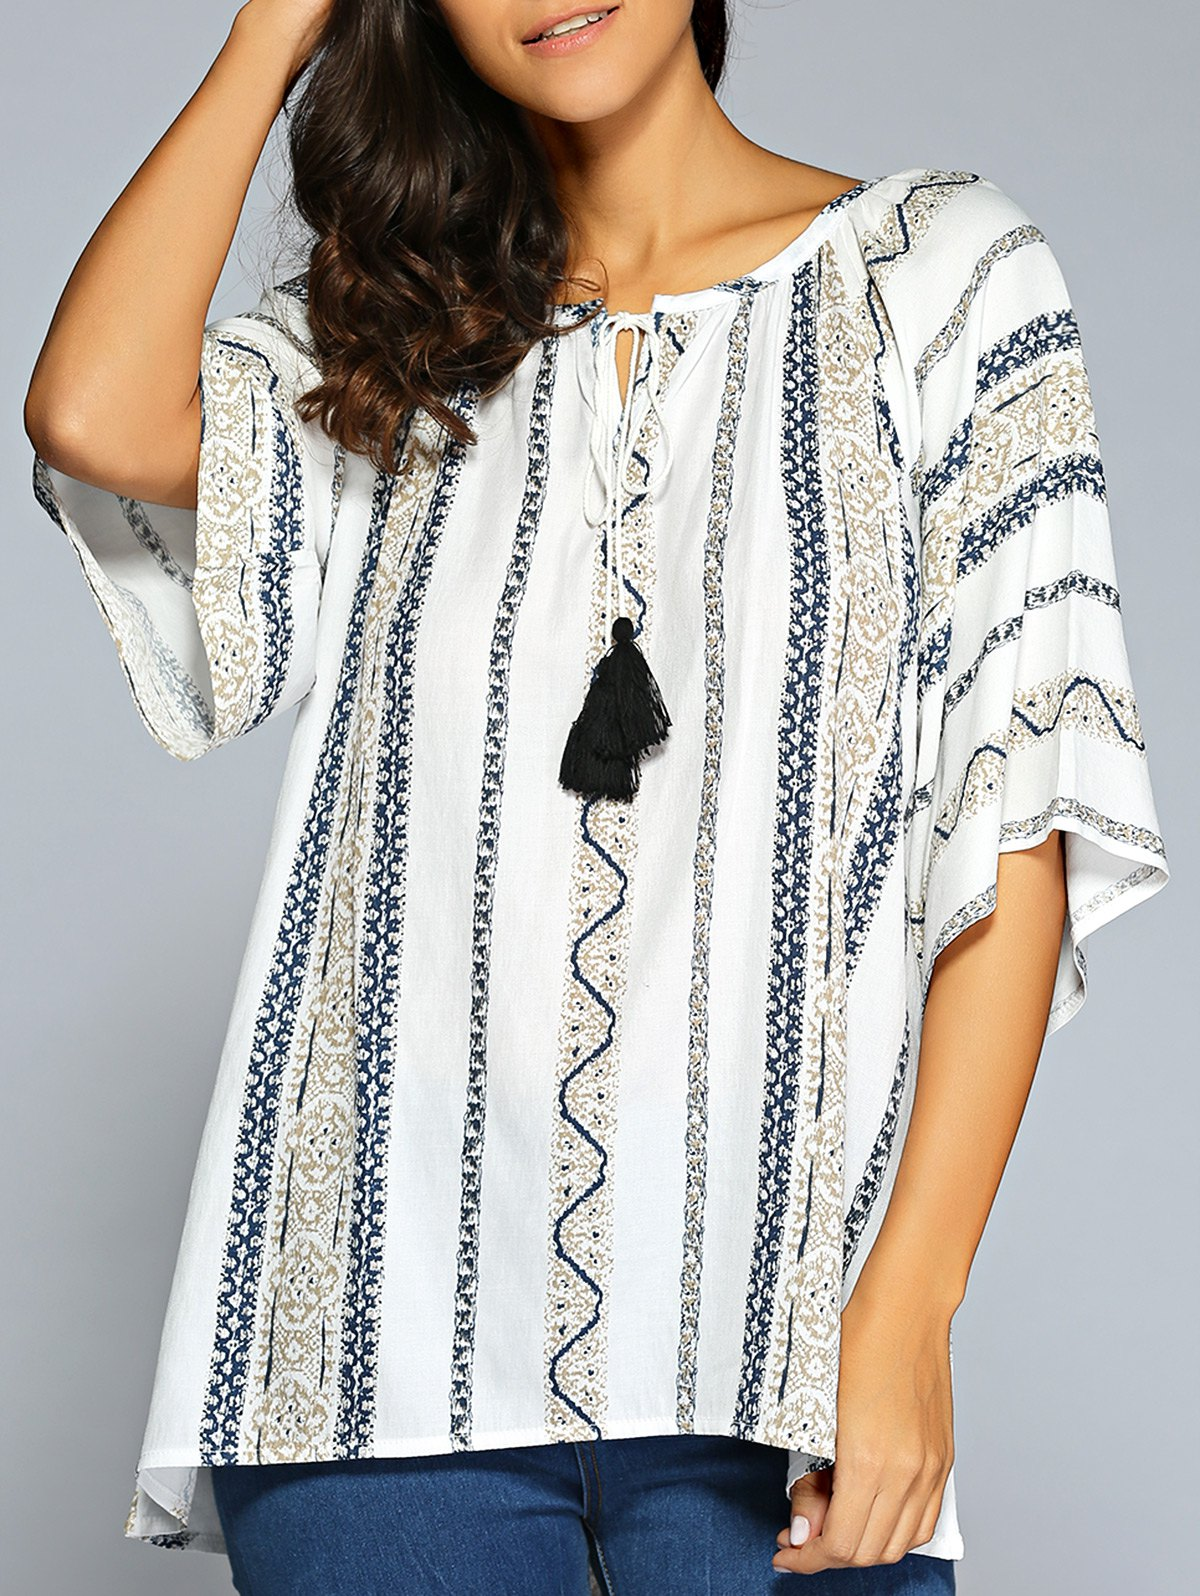 Scoop Neck 3/4 Sleeve Printed Blouse